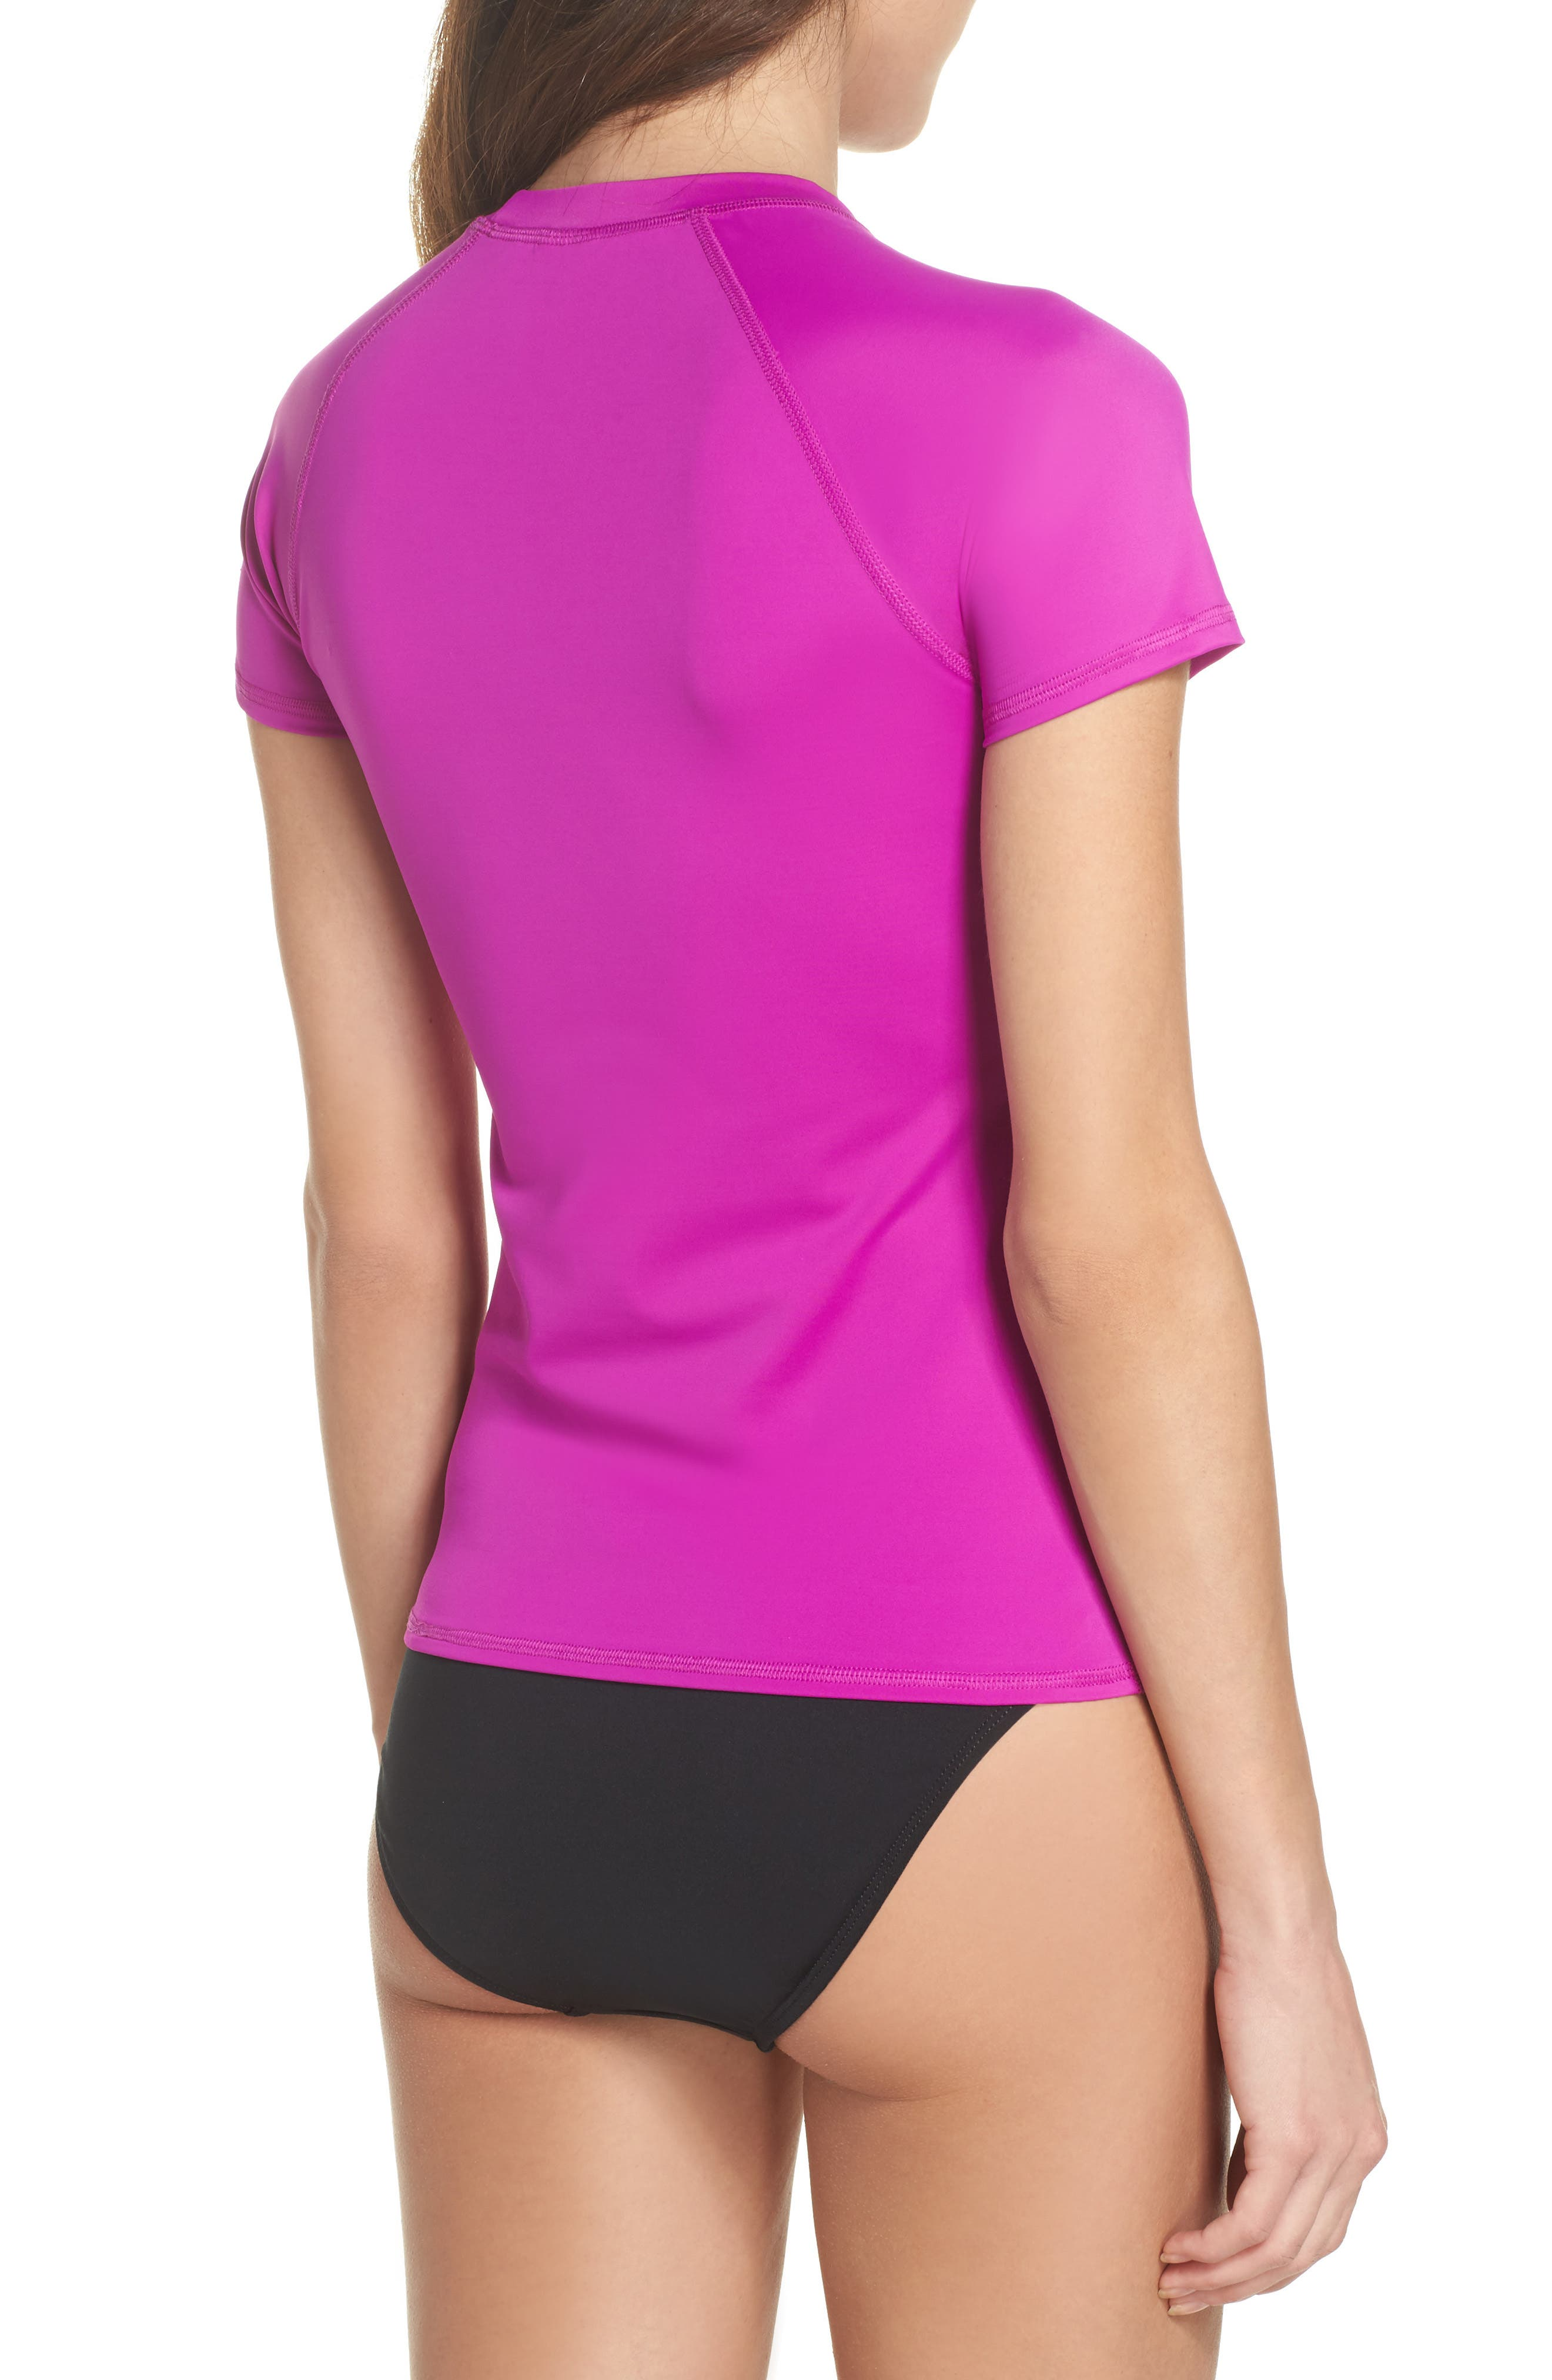 'Smoothies in Motion' Short Sleeve Rashguard,                             Alternate thumbnail 2, color,                             Magnolia